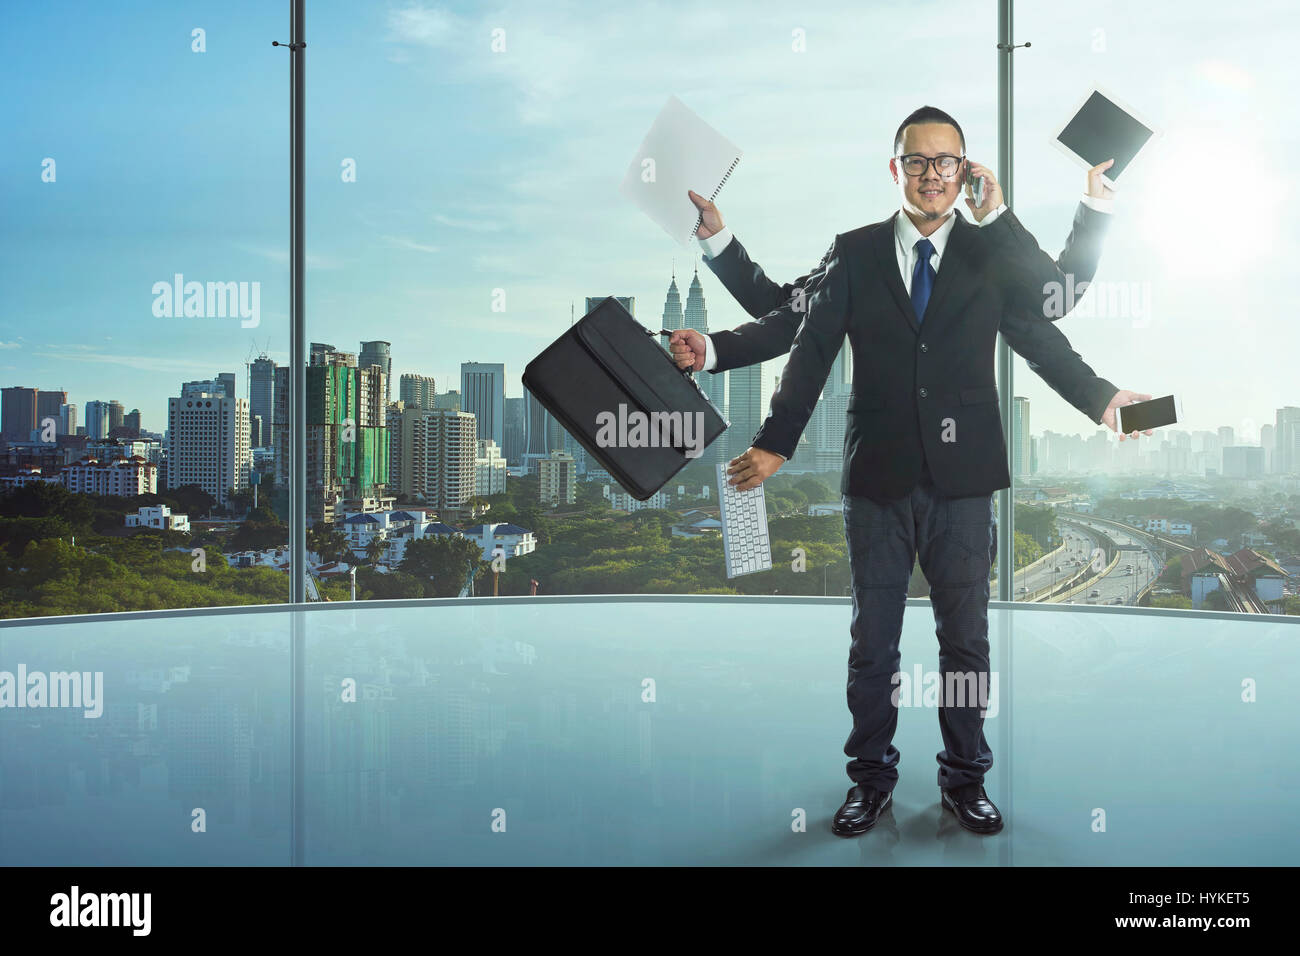 The businessman has a lot of hands to complete his work, a powerful businessman concept. - Stock Image